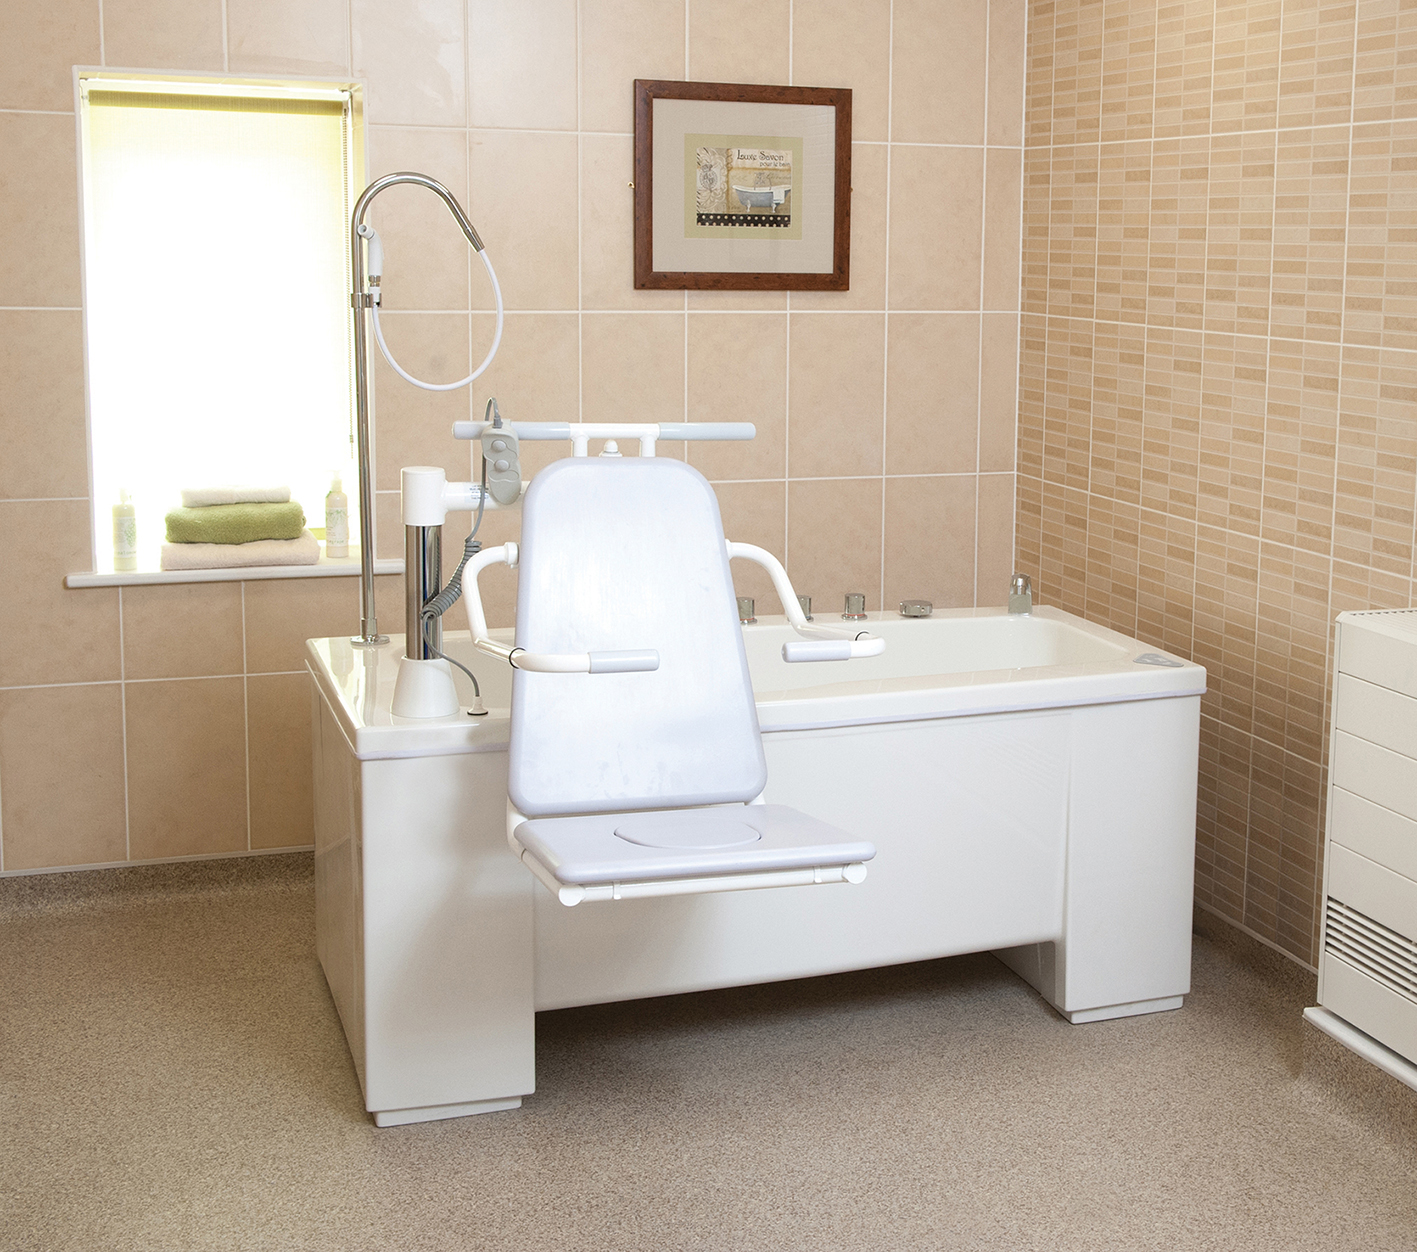 Assisted baths available from Gainsborough in under four weeks